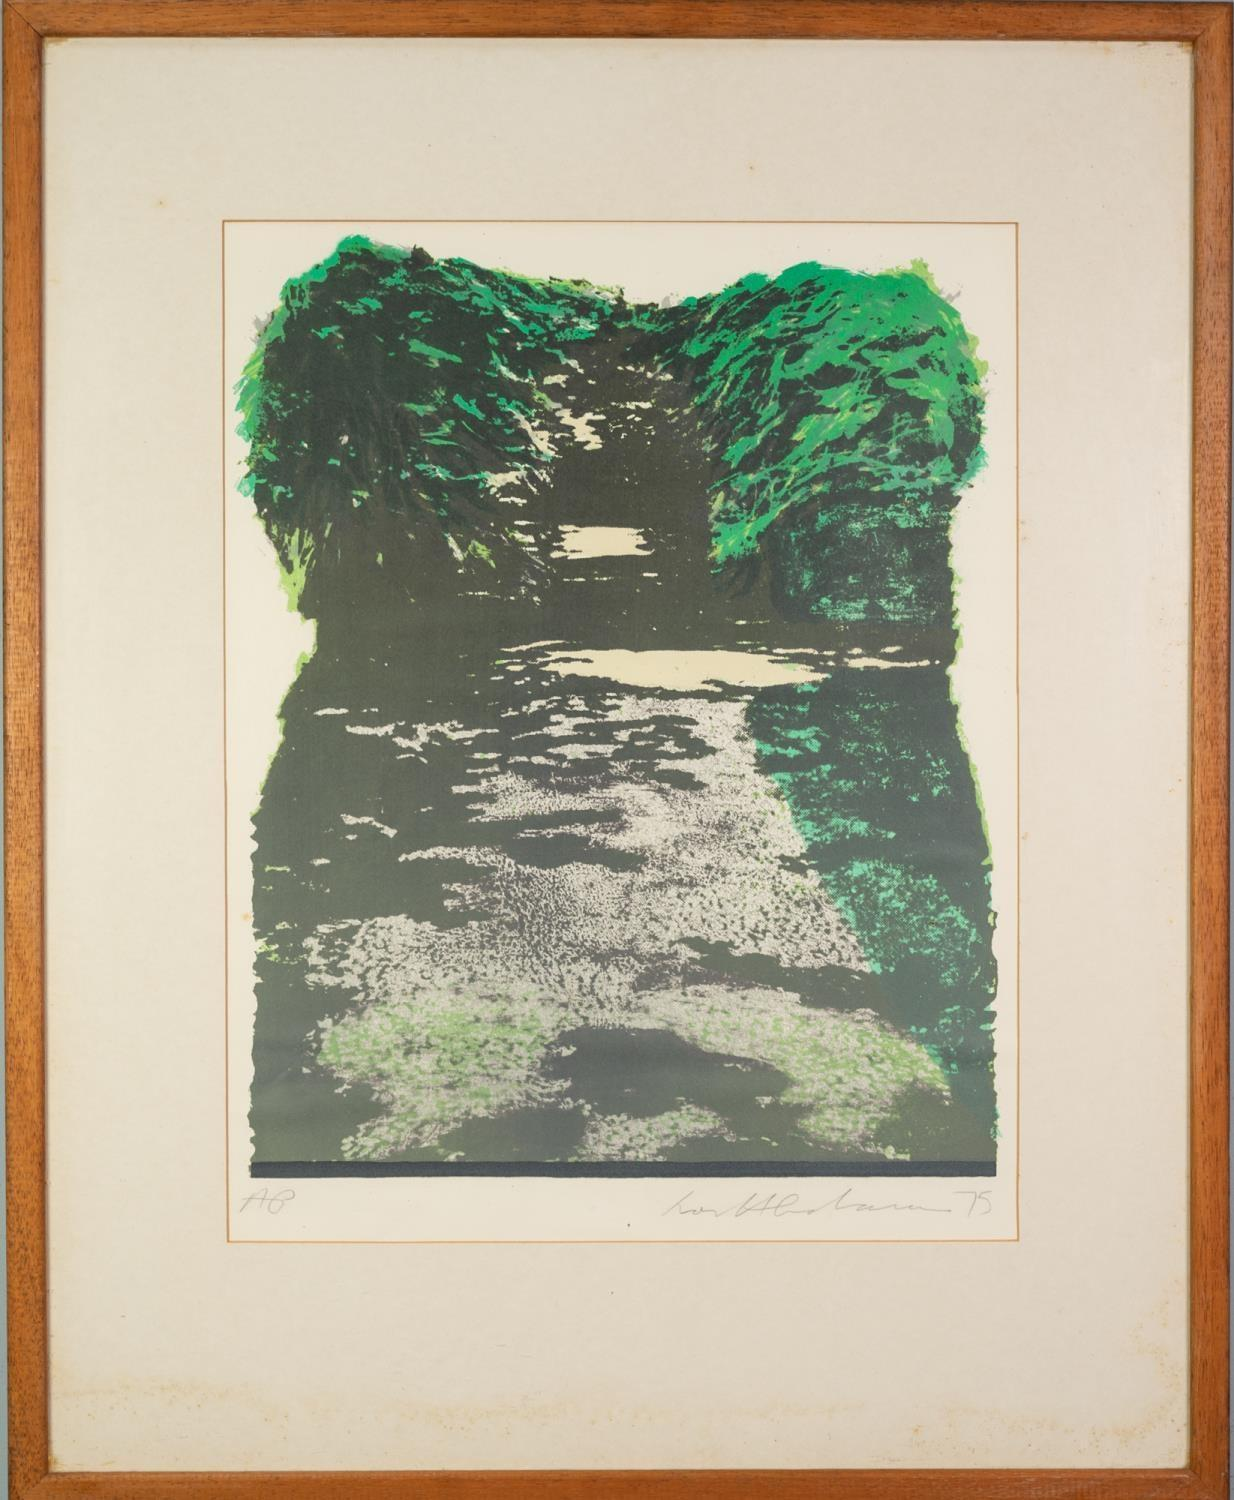 IVOR ABRAHAM (1935-2015) ARTIST SIGNED PROOF COLOURED LITHOGRAPH Tree lined avenue, dated (19)75 16? - Image 2 of 2